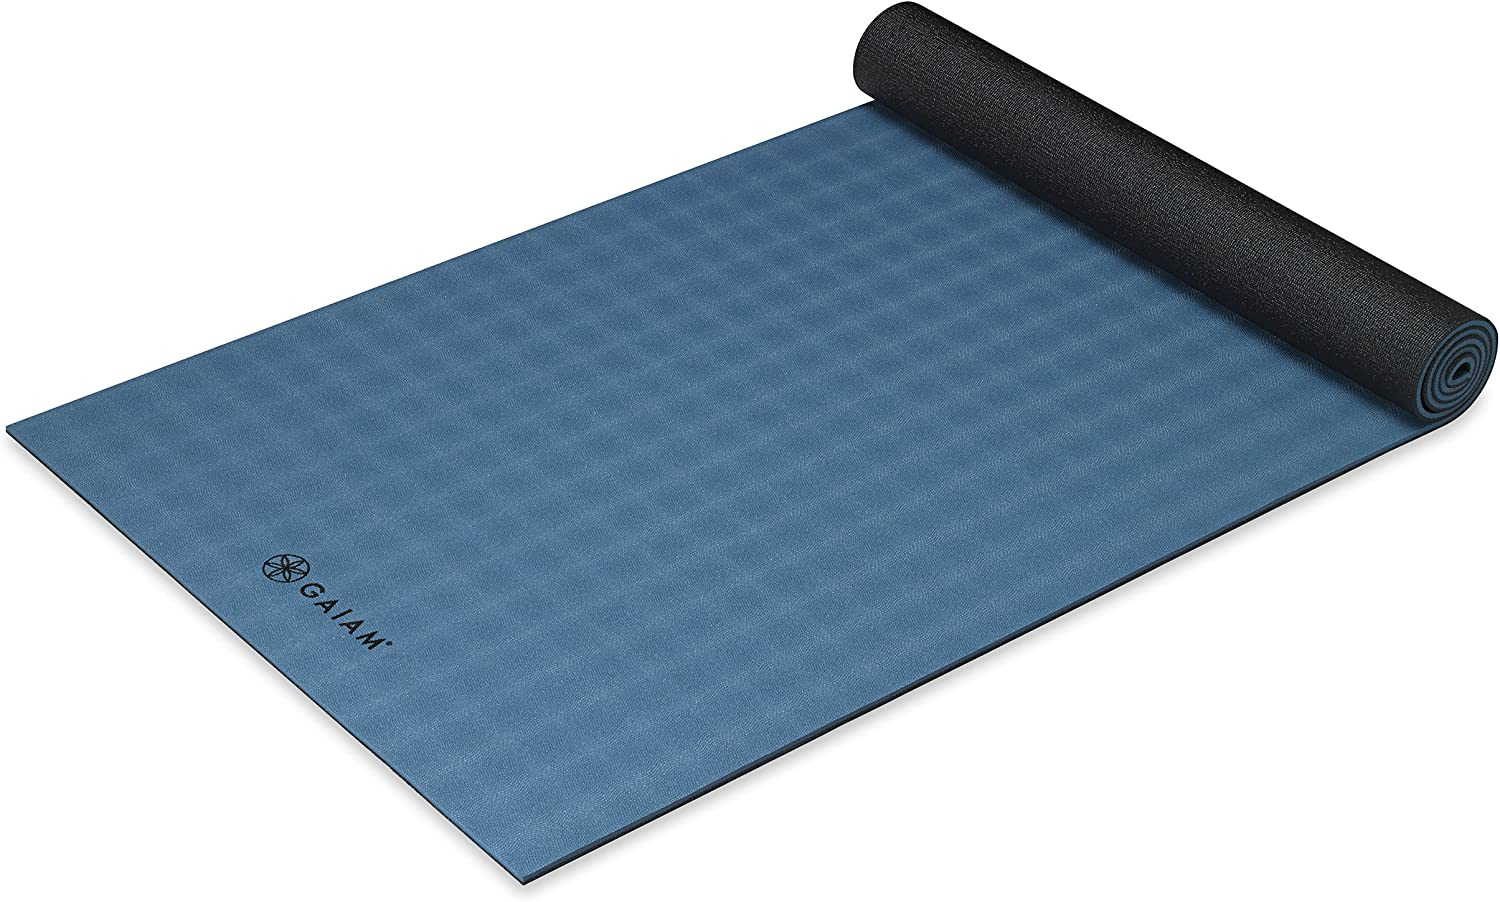 Gaiam Yoga Mat - Ultra-Sticky 6mm Thick Exercise Austin Mall Fitness Extra Direct store